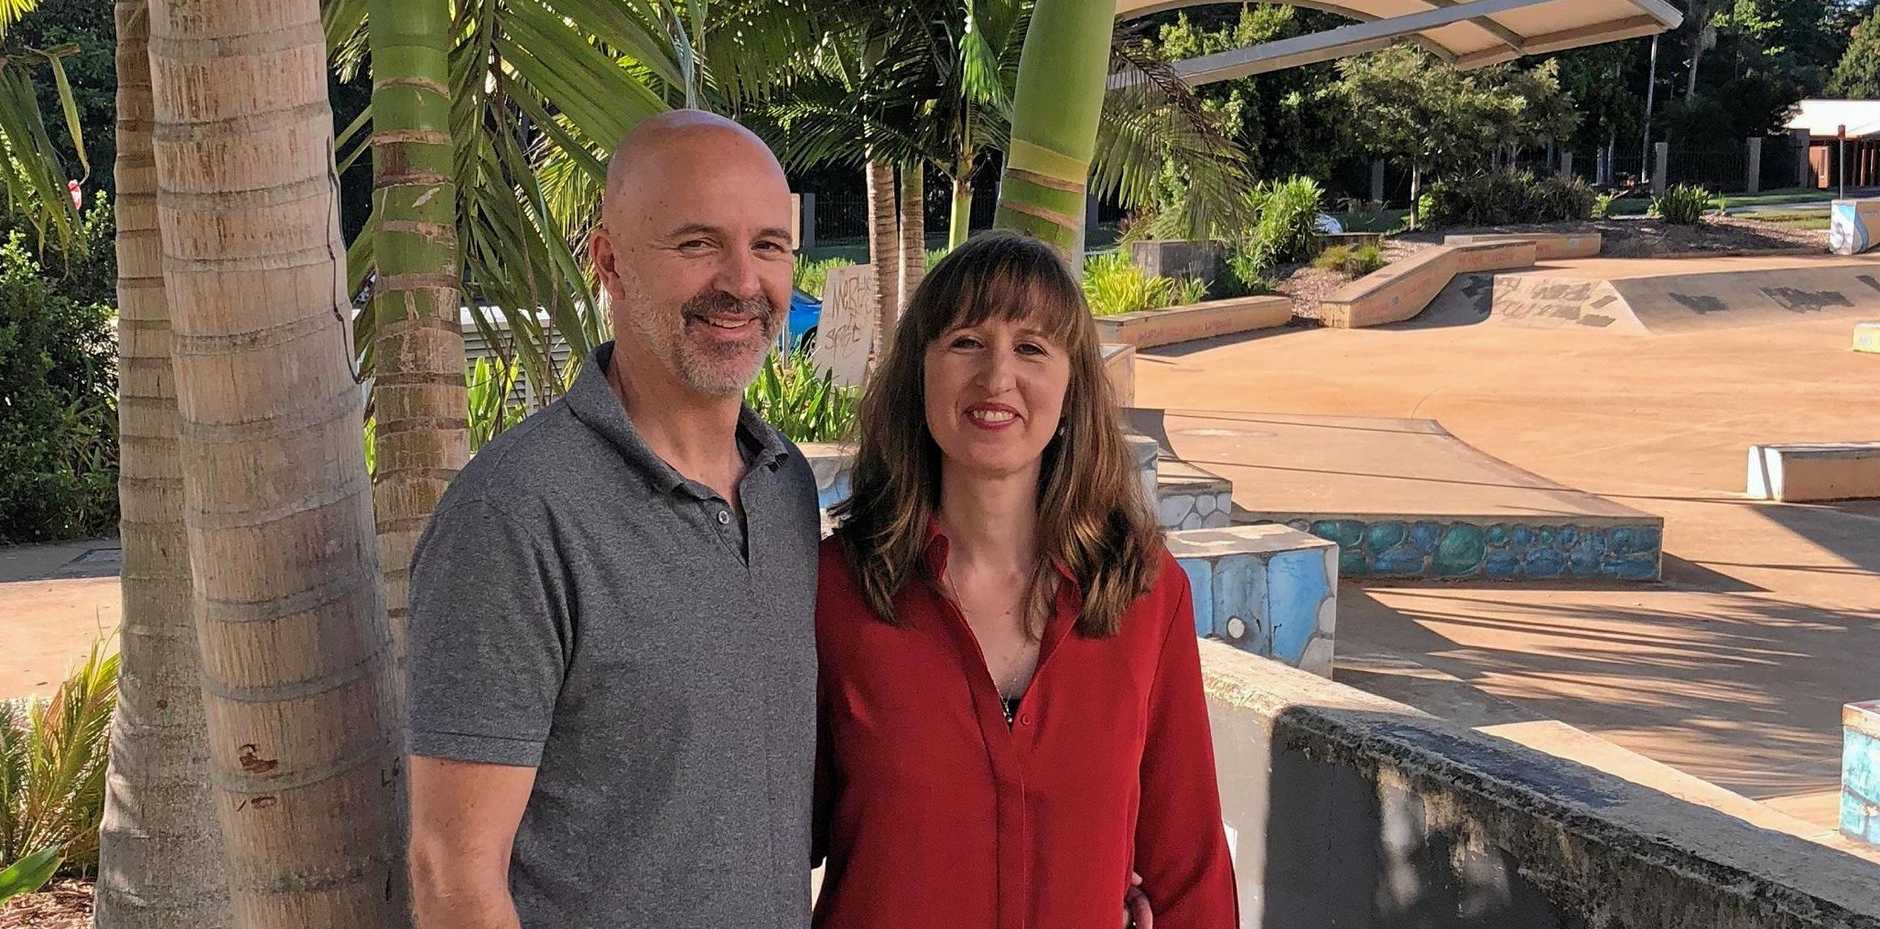 LOOKING OUT: Adaptapack directors, Sam and Katie Walls, are in Goonellabah to look at sites for the expansion of their Sydney-based robotics company